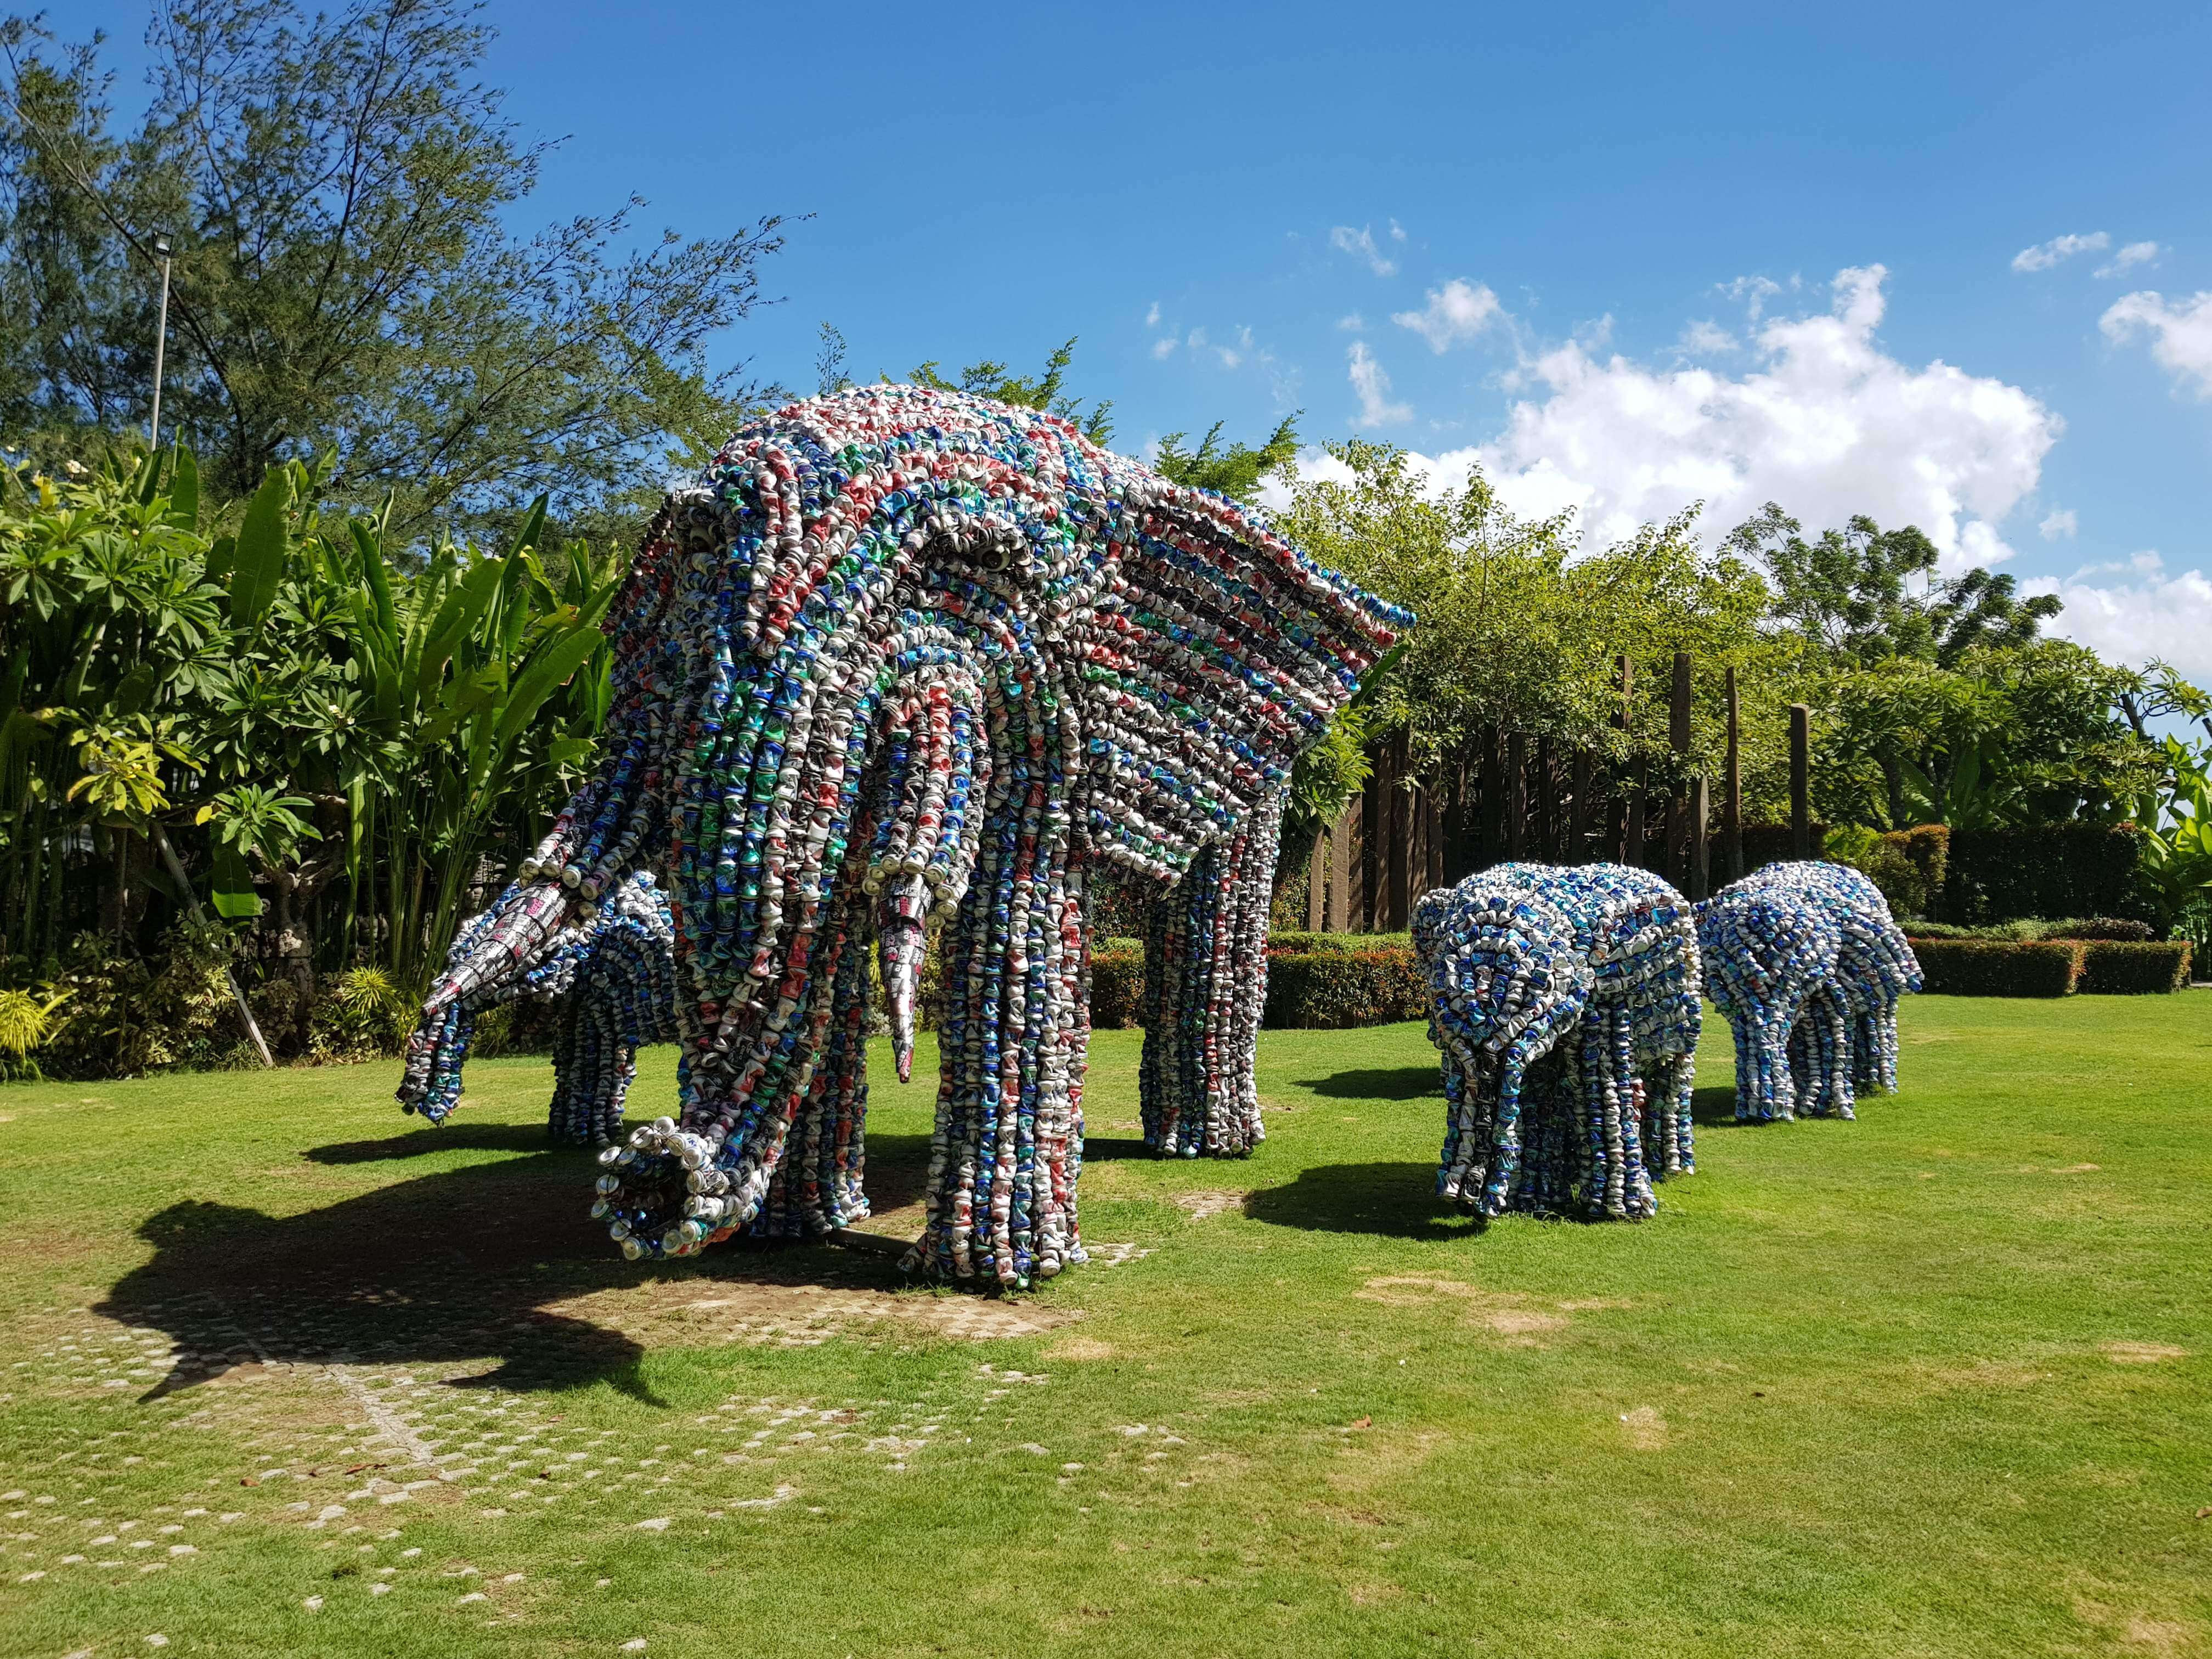 Elephants bali big corner garden